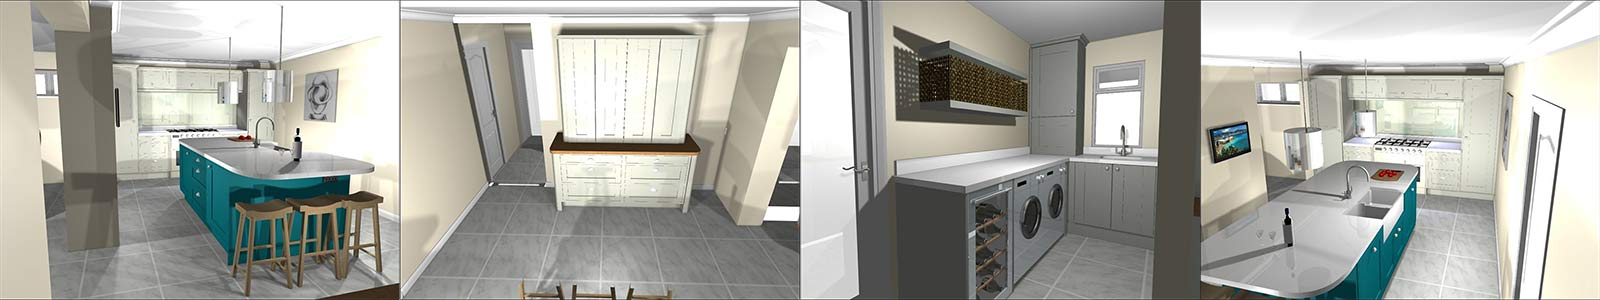 Image of Remodelling of kitchen and utility room